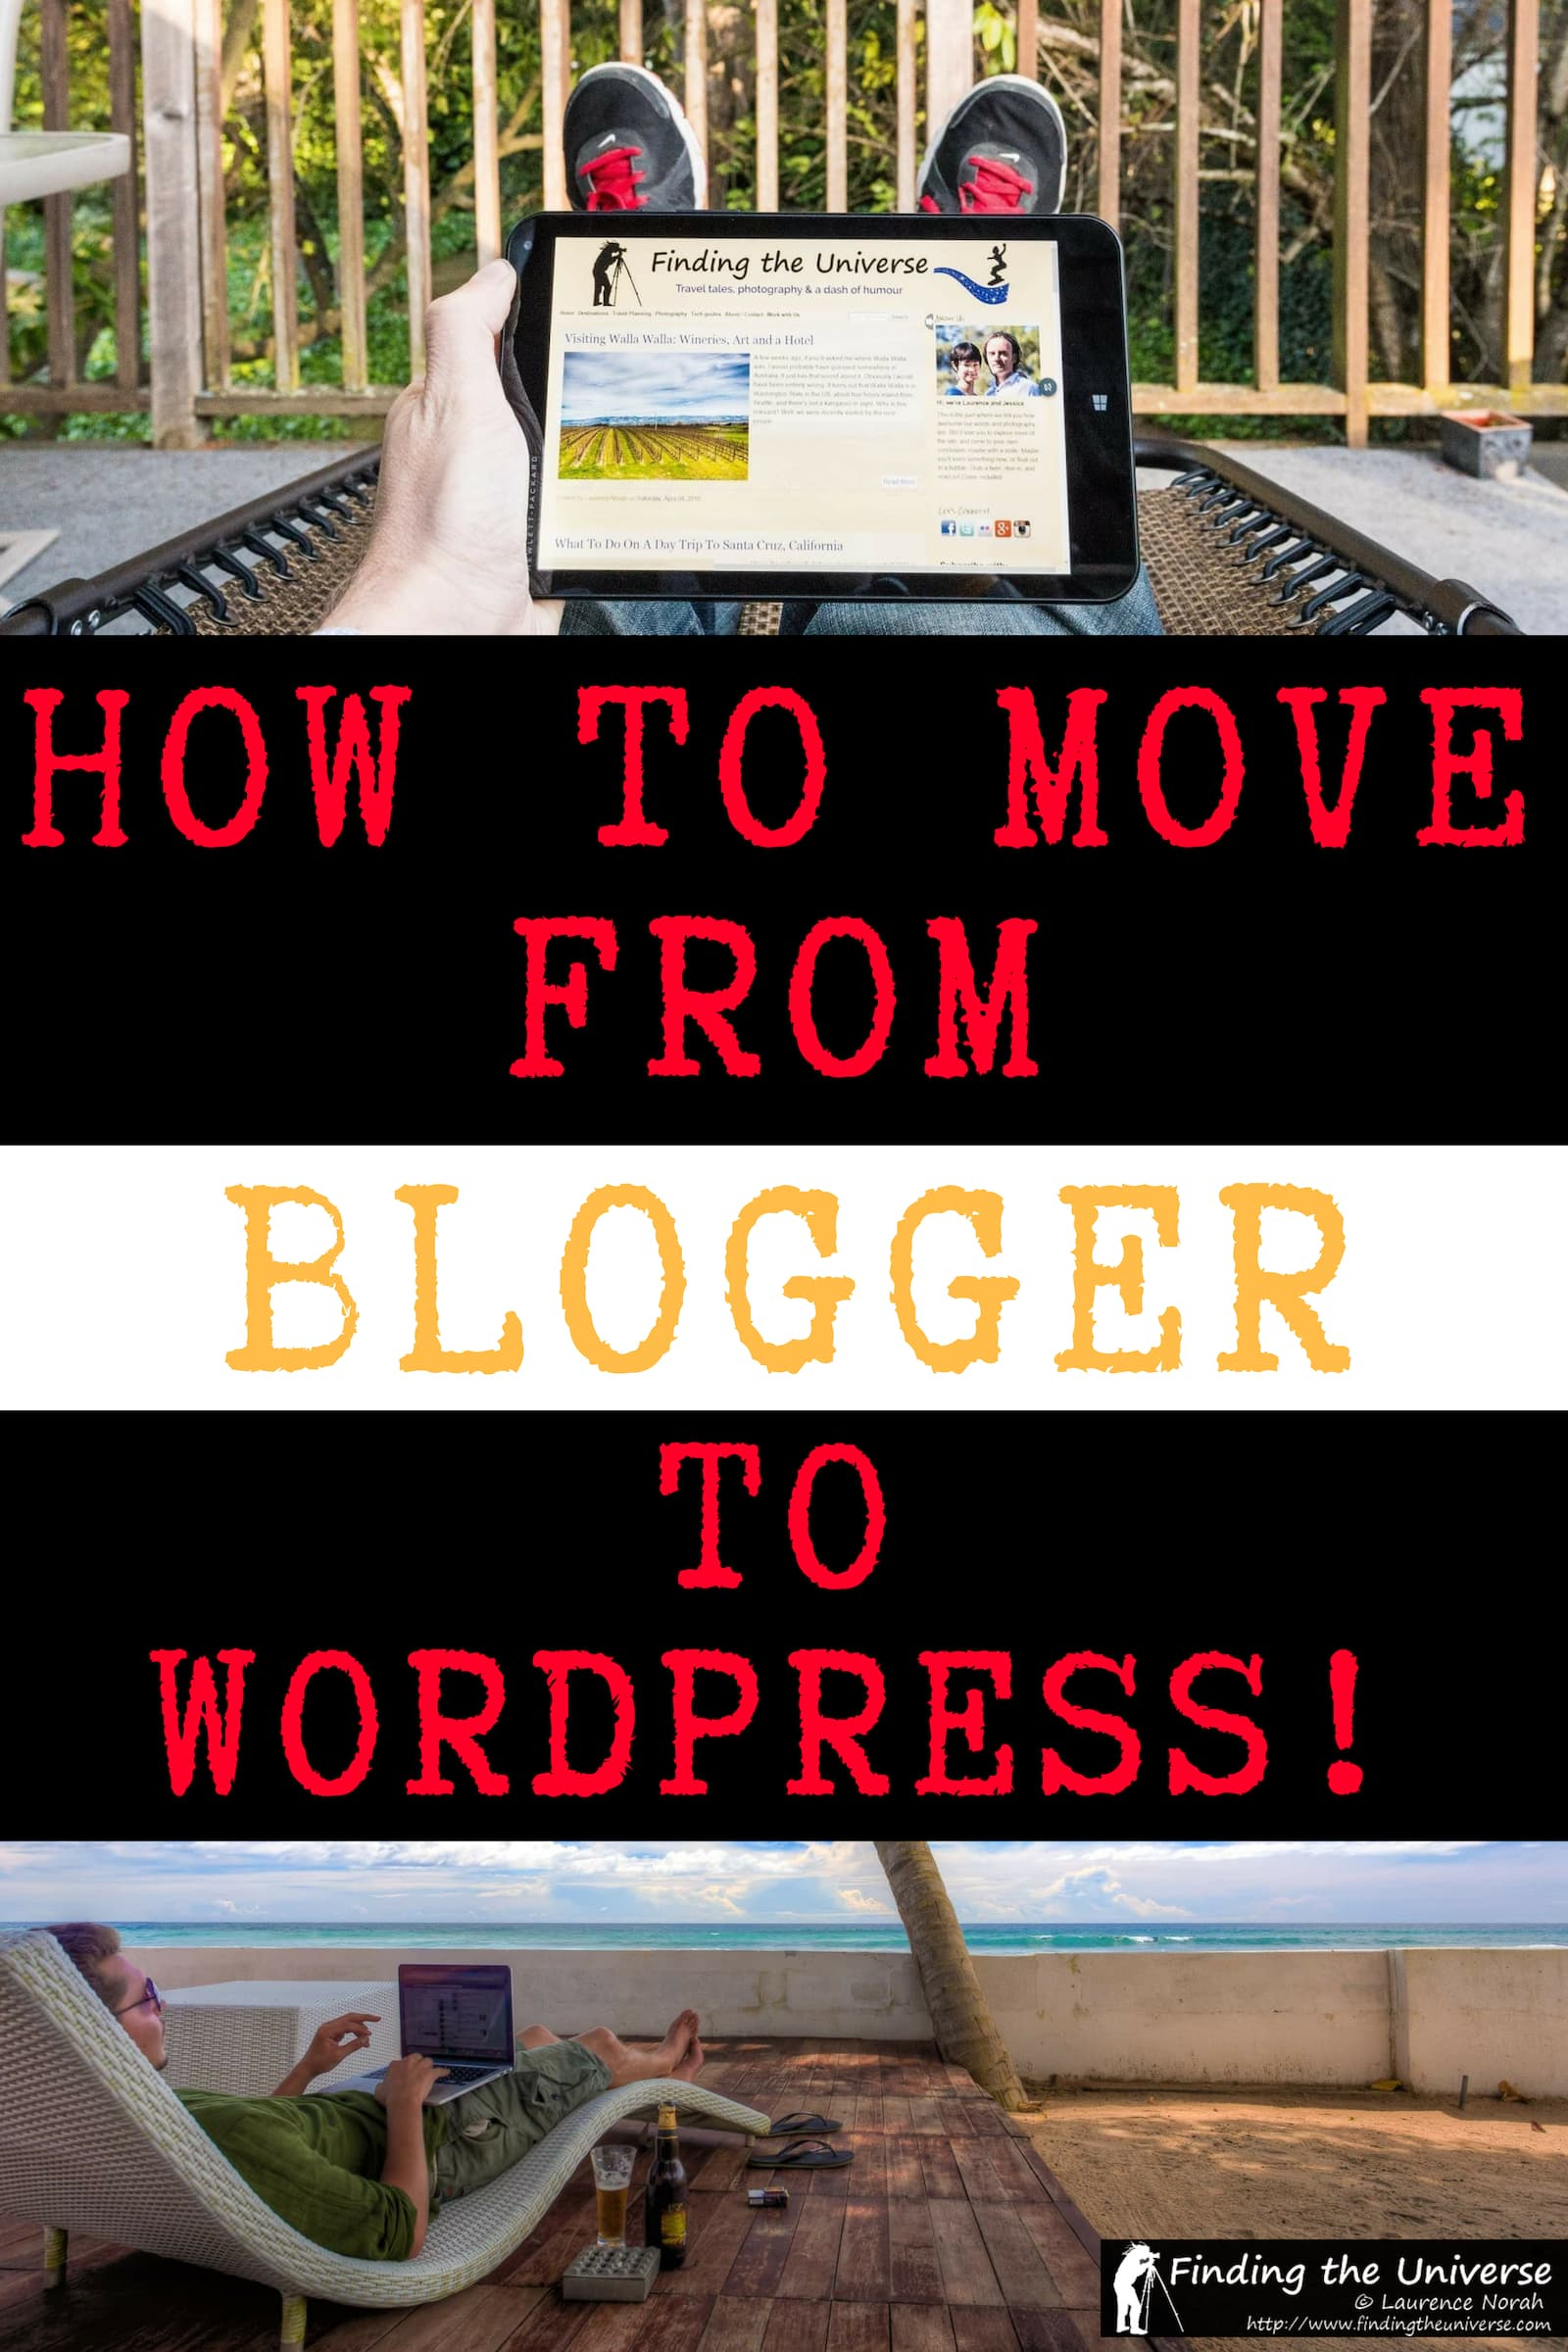 Detailed tips and things to watch out for when moving from Blogger to WordPress, including reasons why you might want to migrate from Blogger to WordPress, and everything you need to be aware of when making the move yourself!